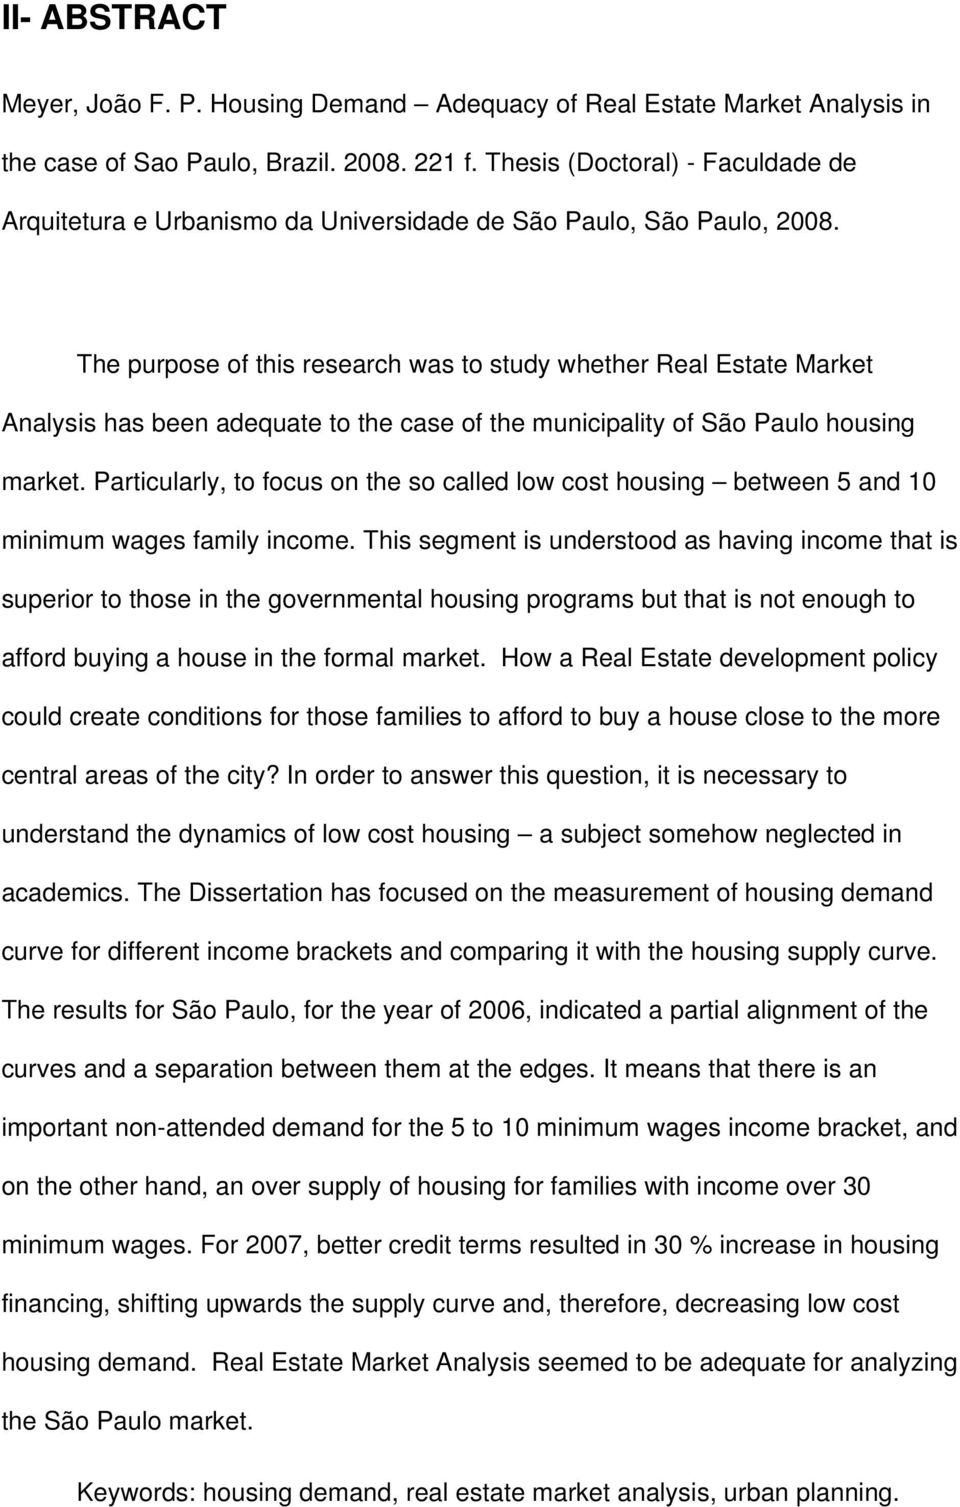 The purpose of this research was to study whether Real Estate Market Analysis has been adequate to the case of the municipality of São Paulo housing market.